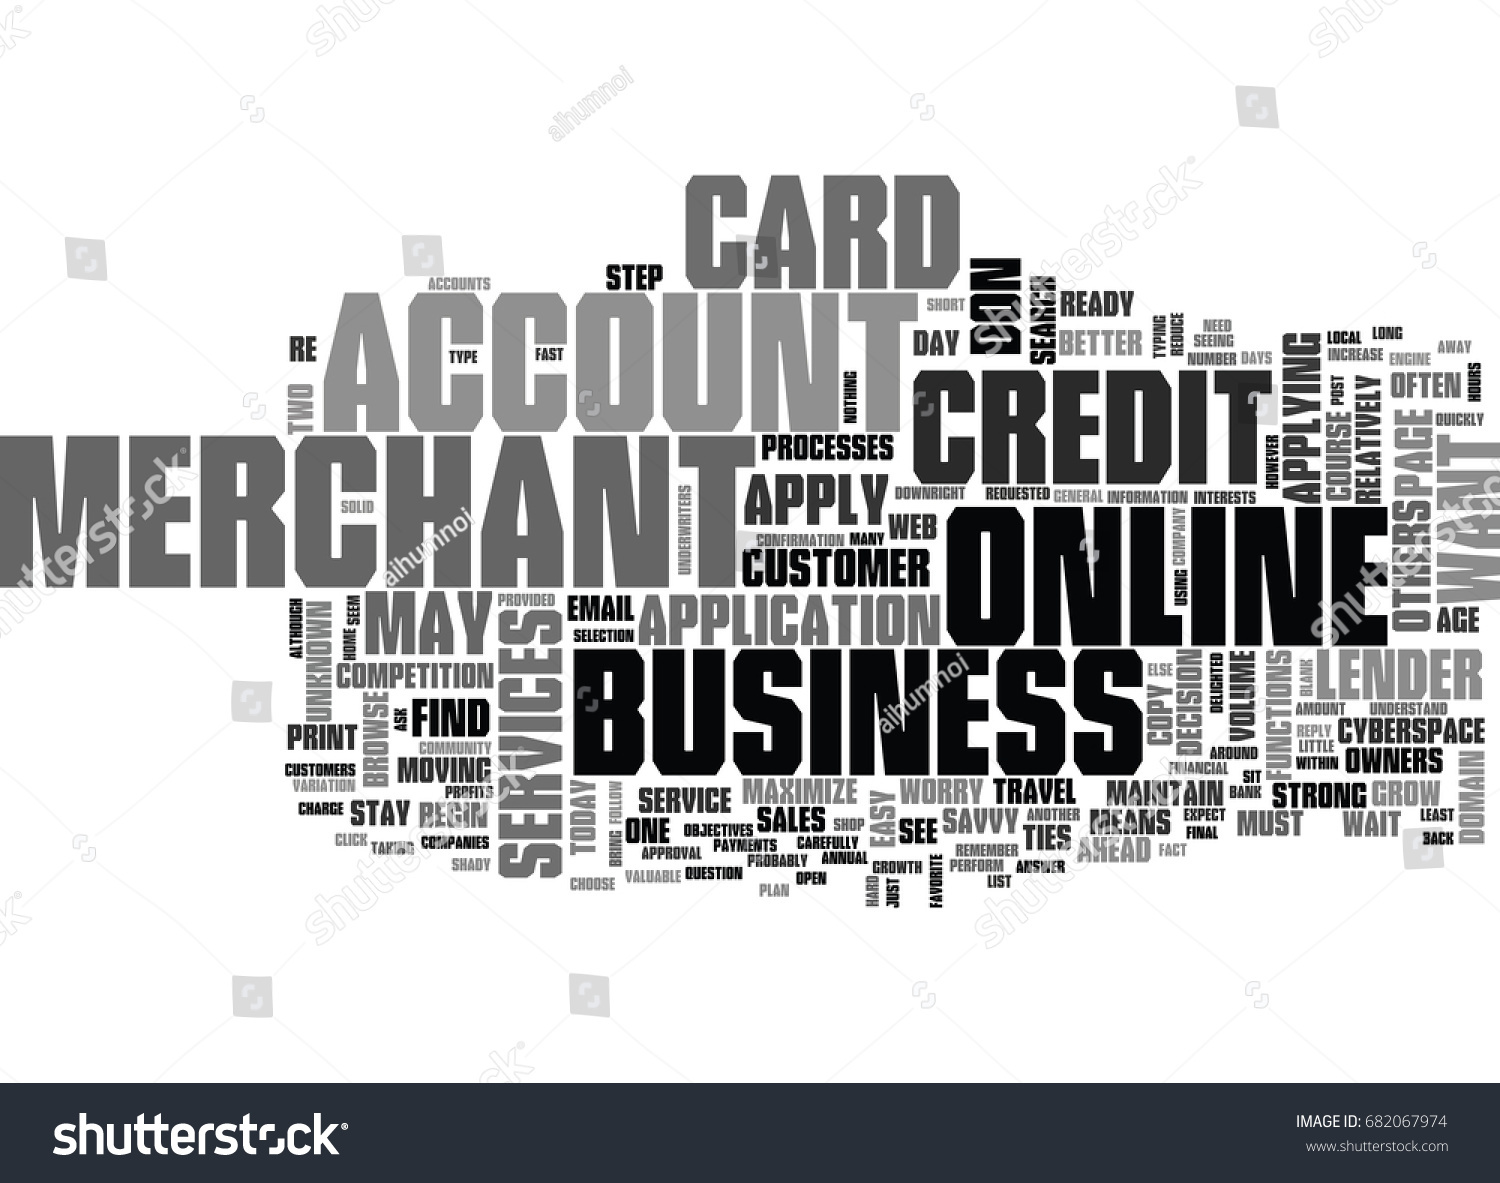 Secured business credit cards for new business image collections applying for business credit card choice image free business cards apply business credit card choice image magicingreecefo Images